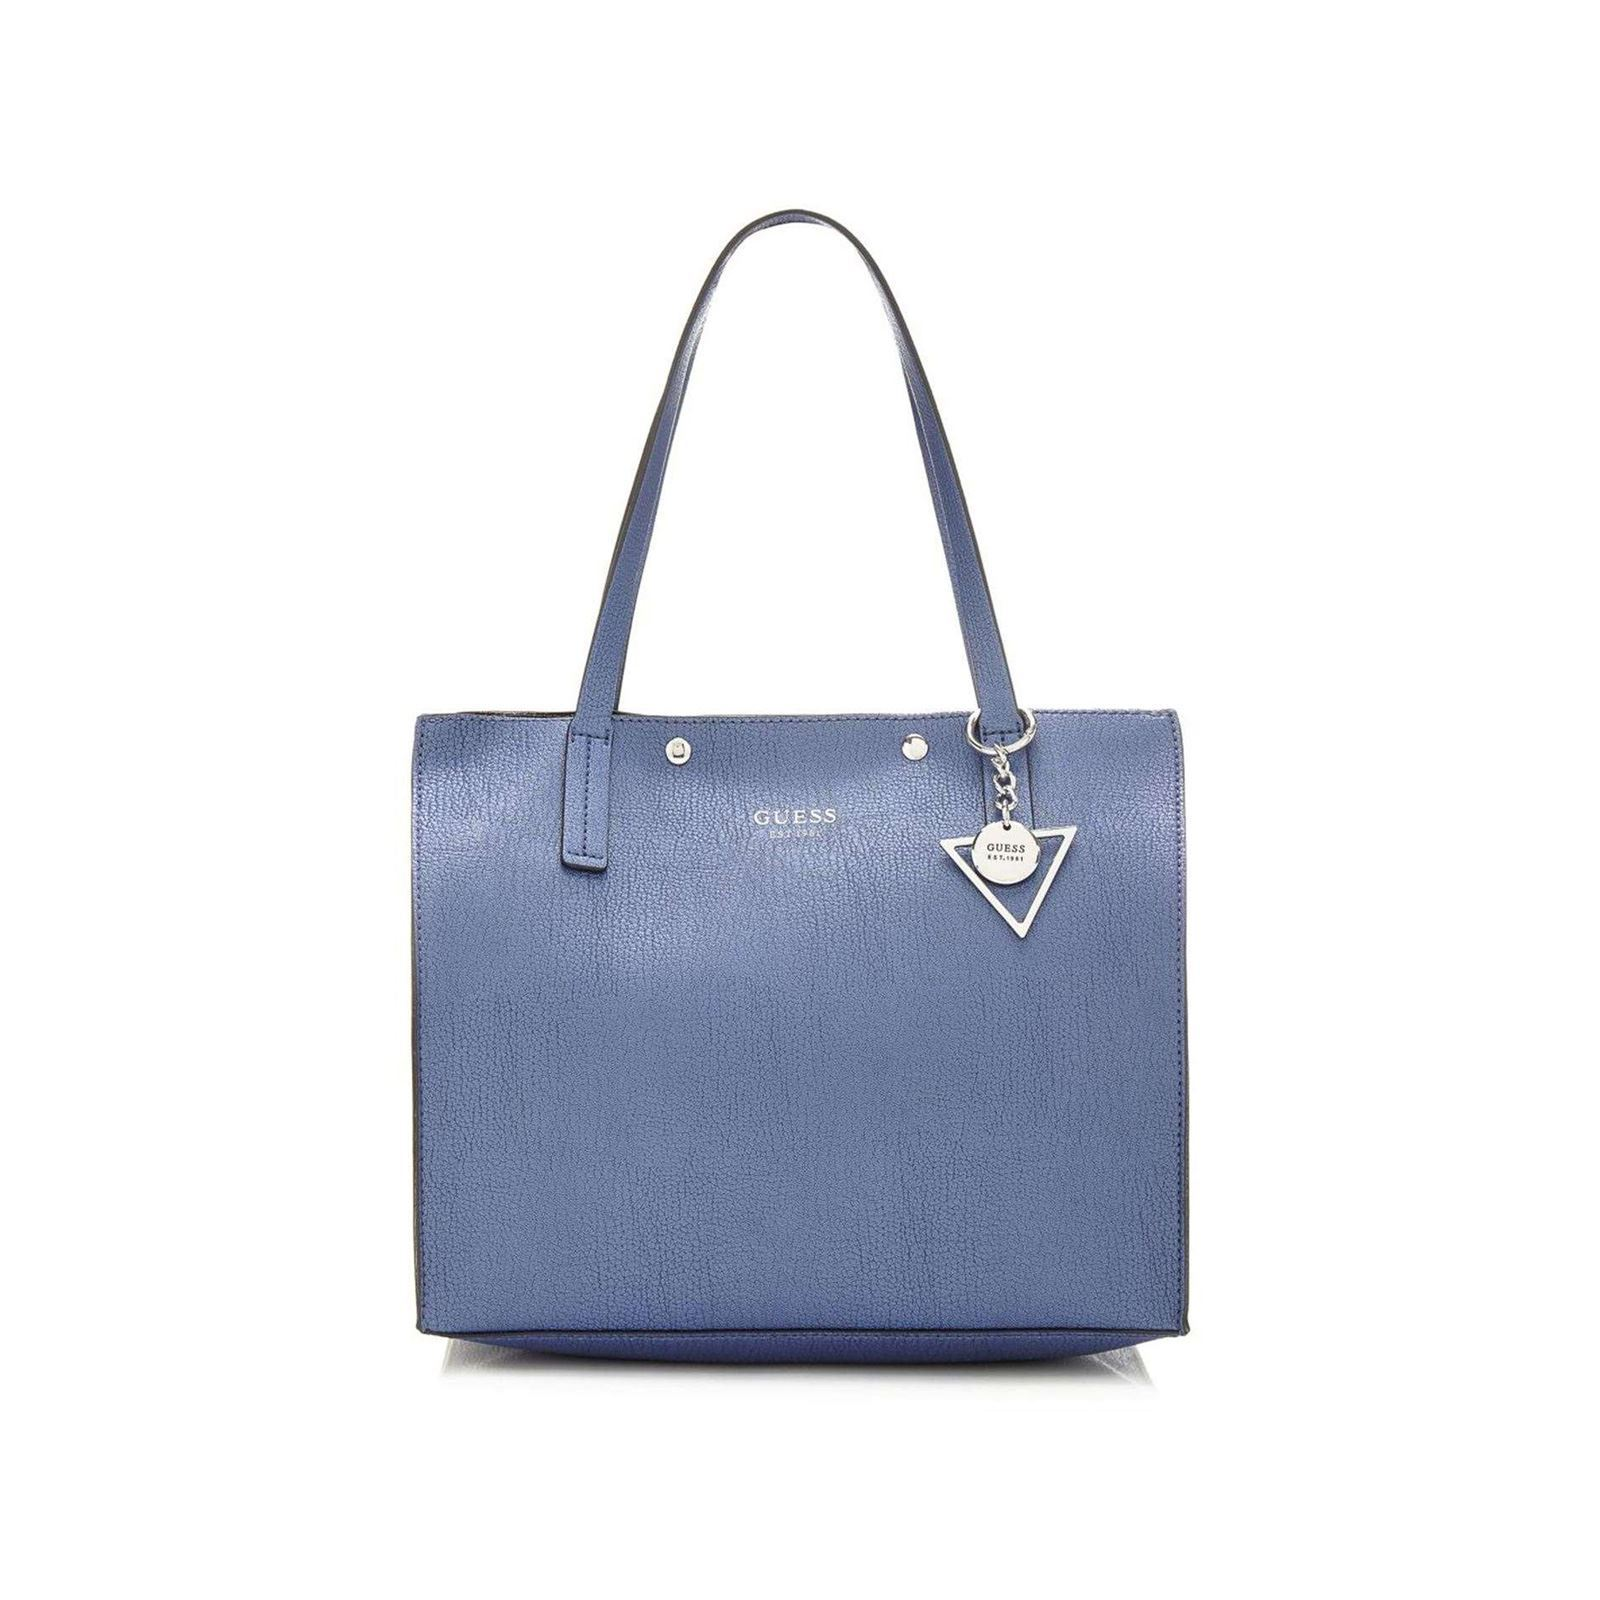 blu Brandalley Tracolla Guess Tracolla Kinley blu qEf8H6